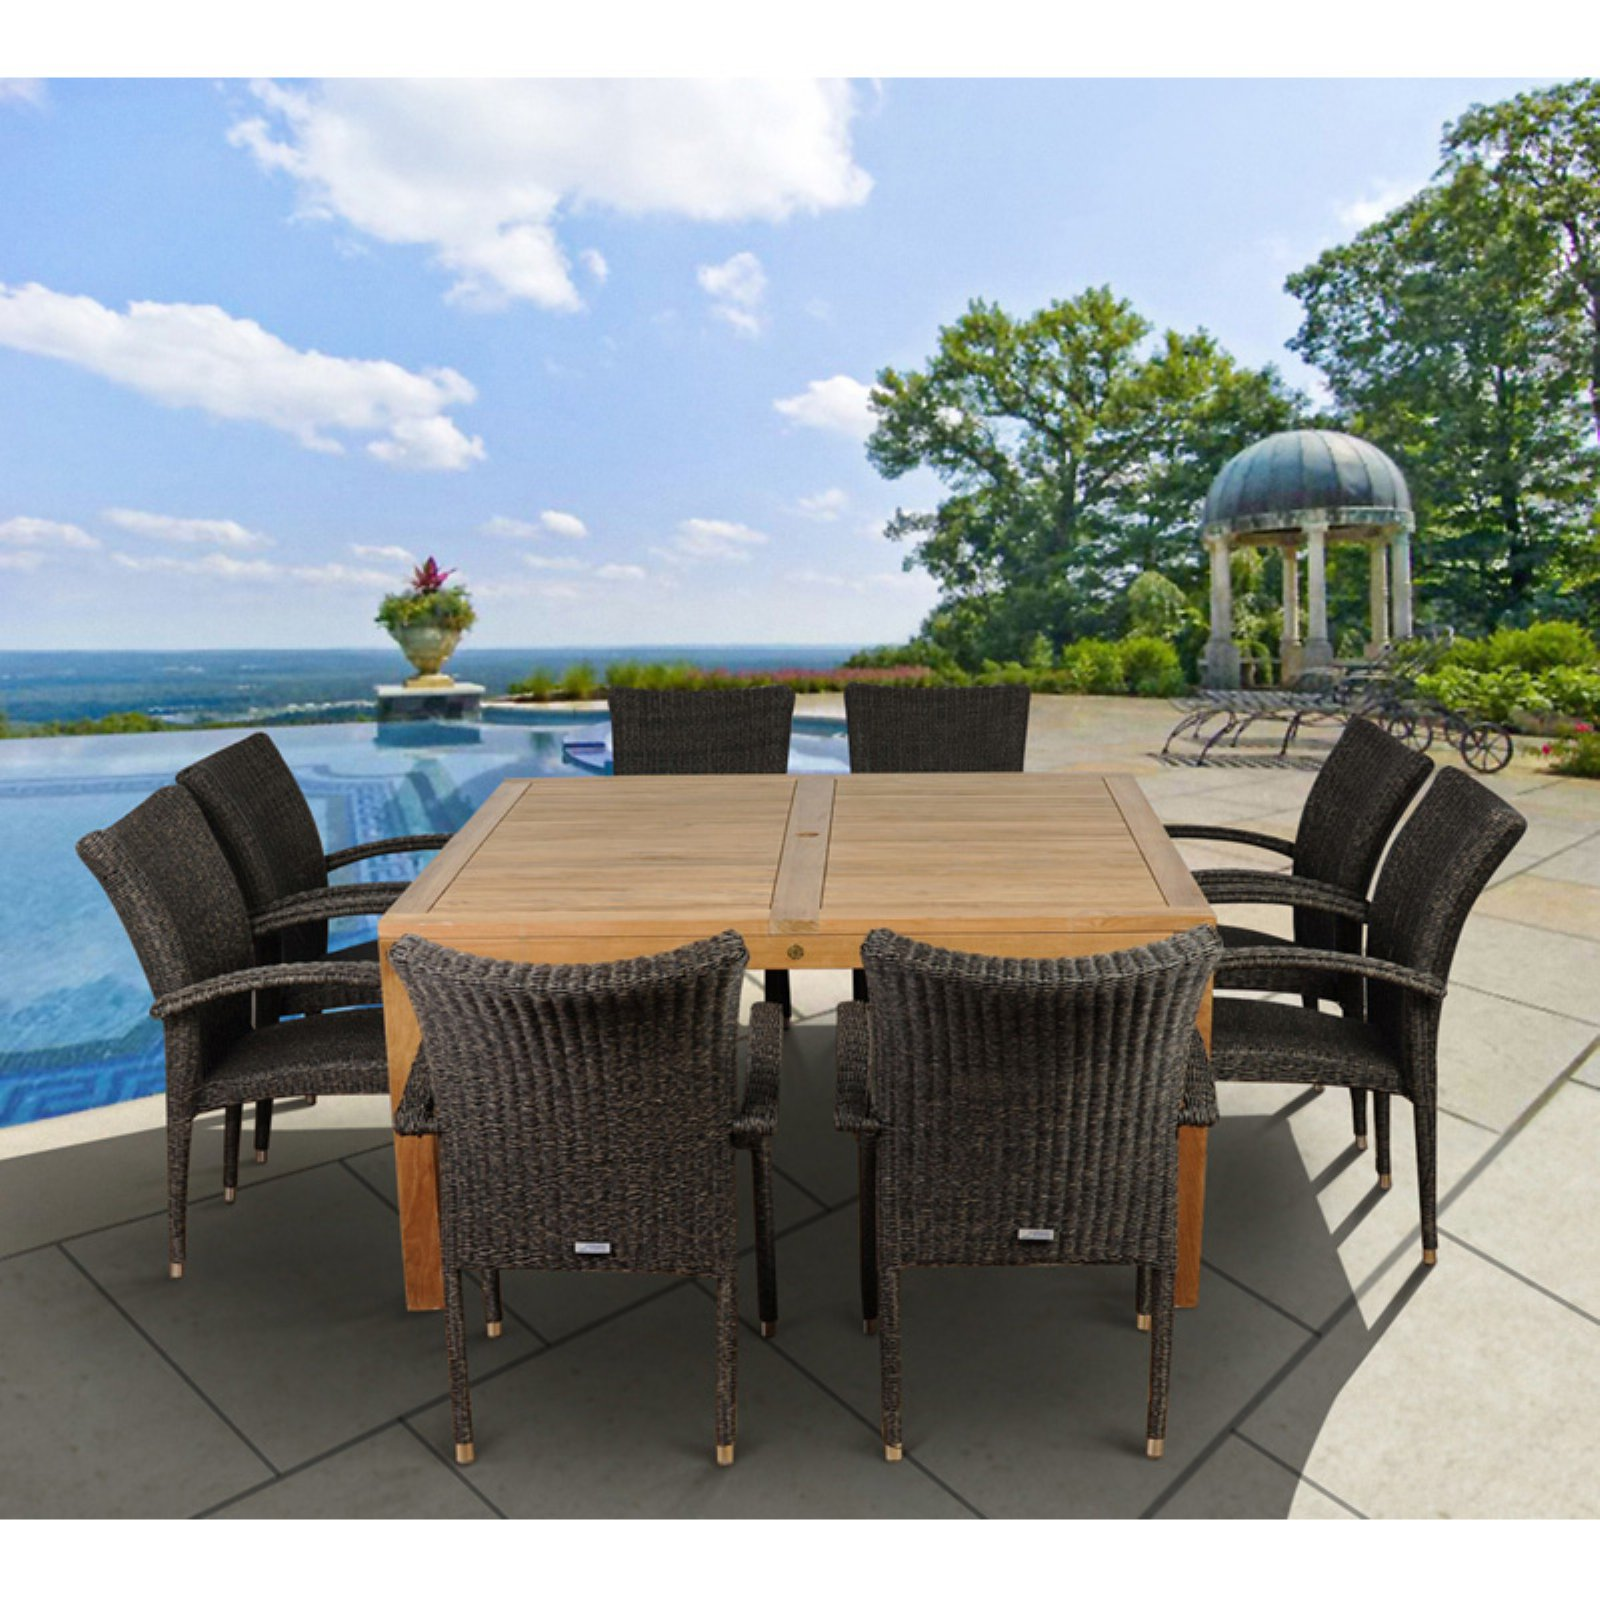 Amazonia Glenwood 9 Piece Teak/Wicker Square Patio Dining Set